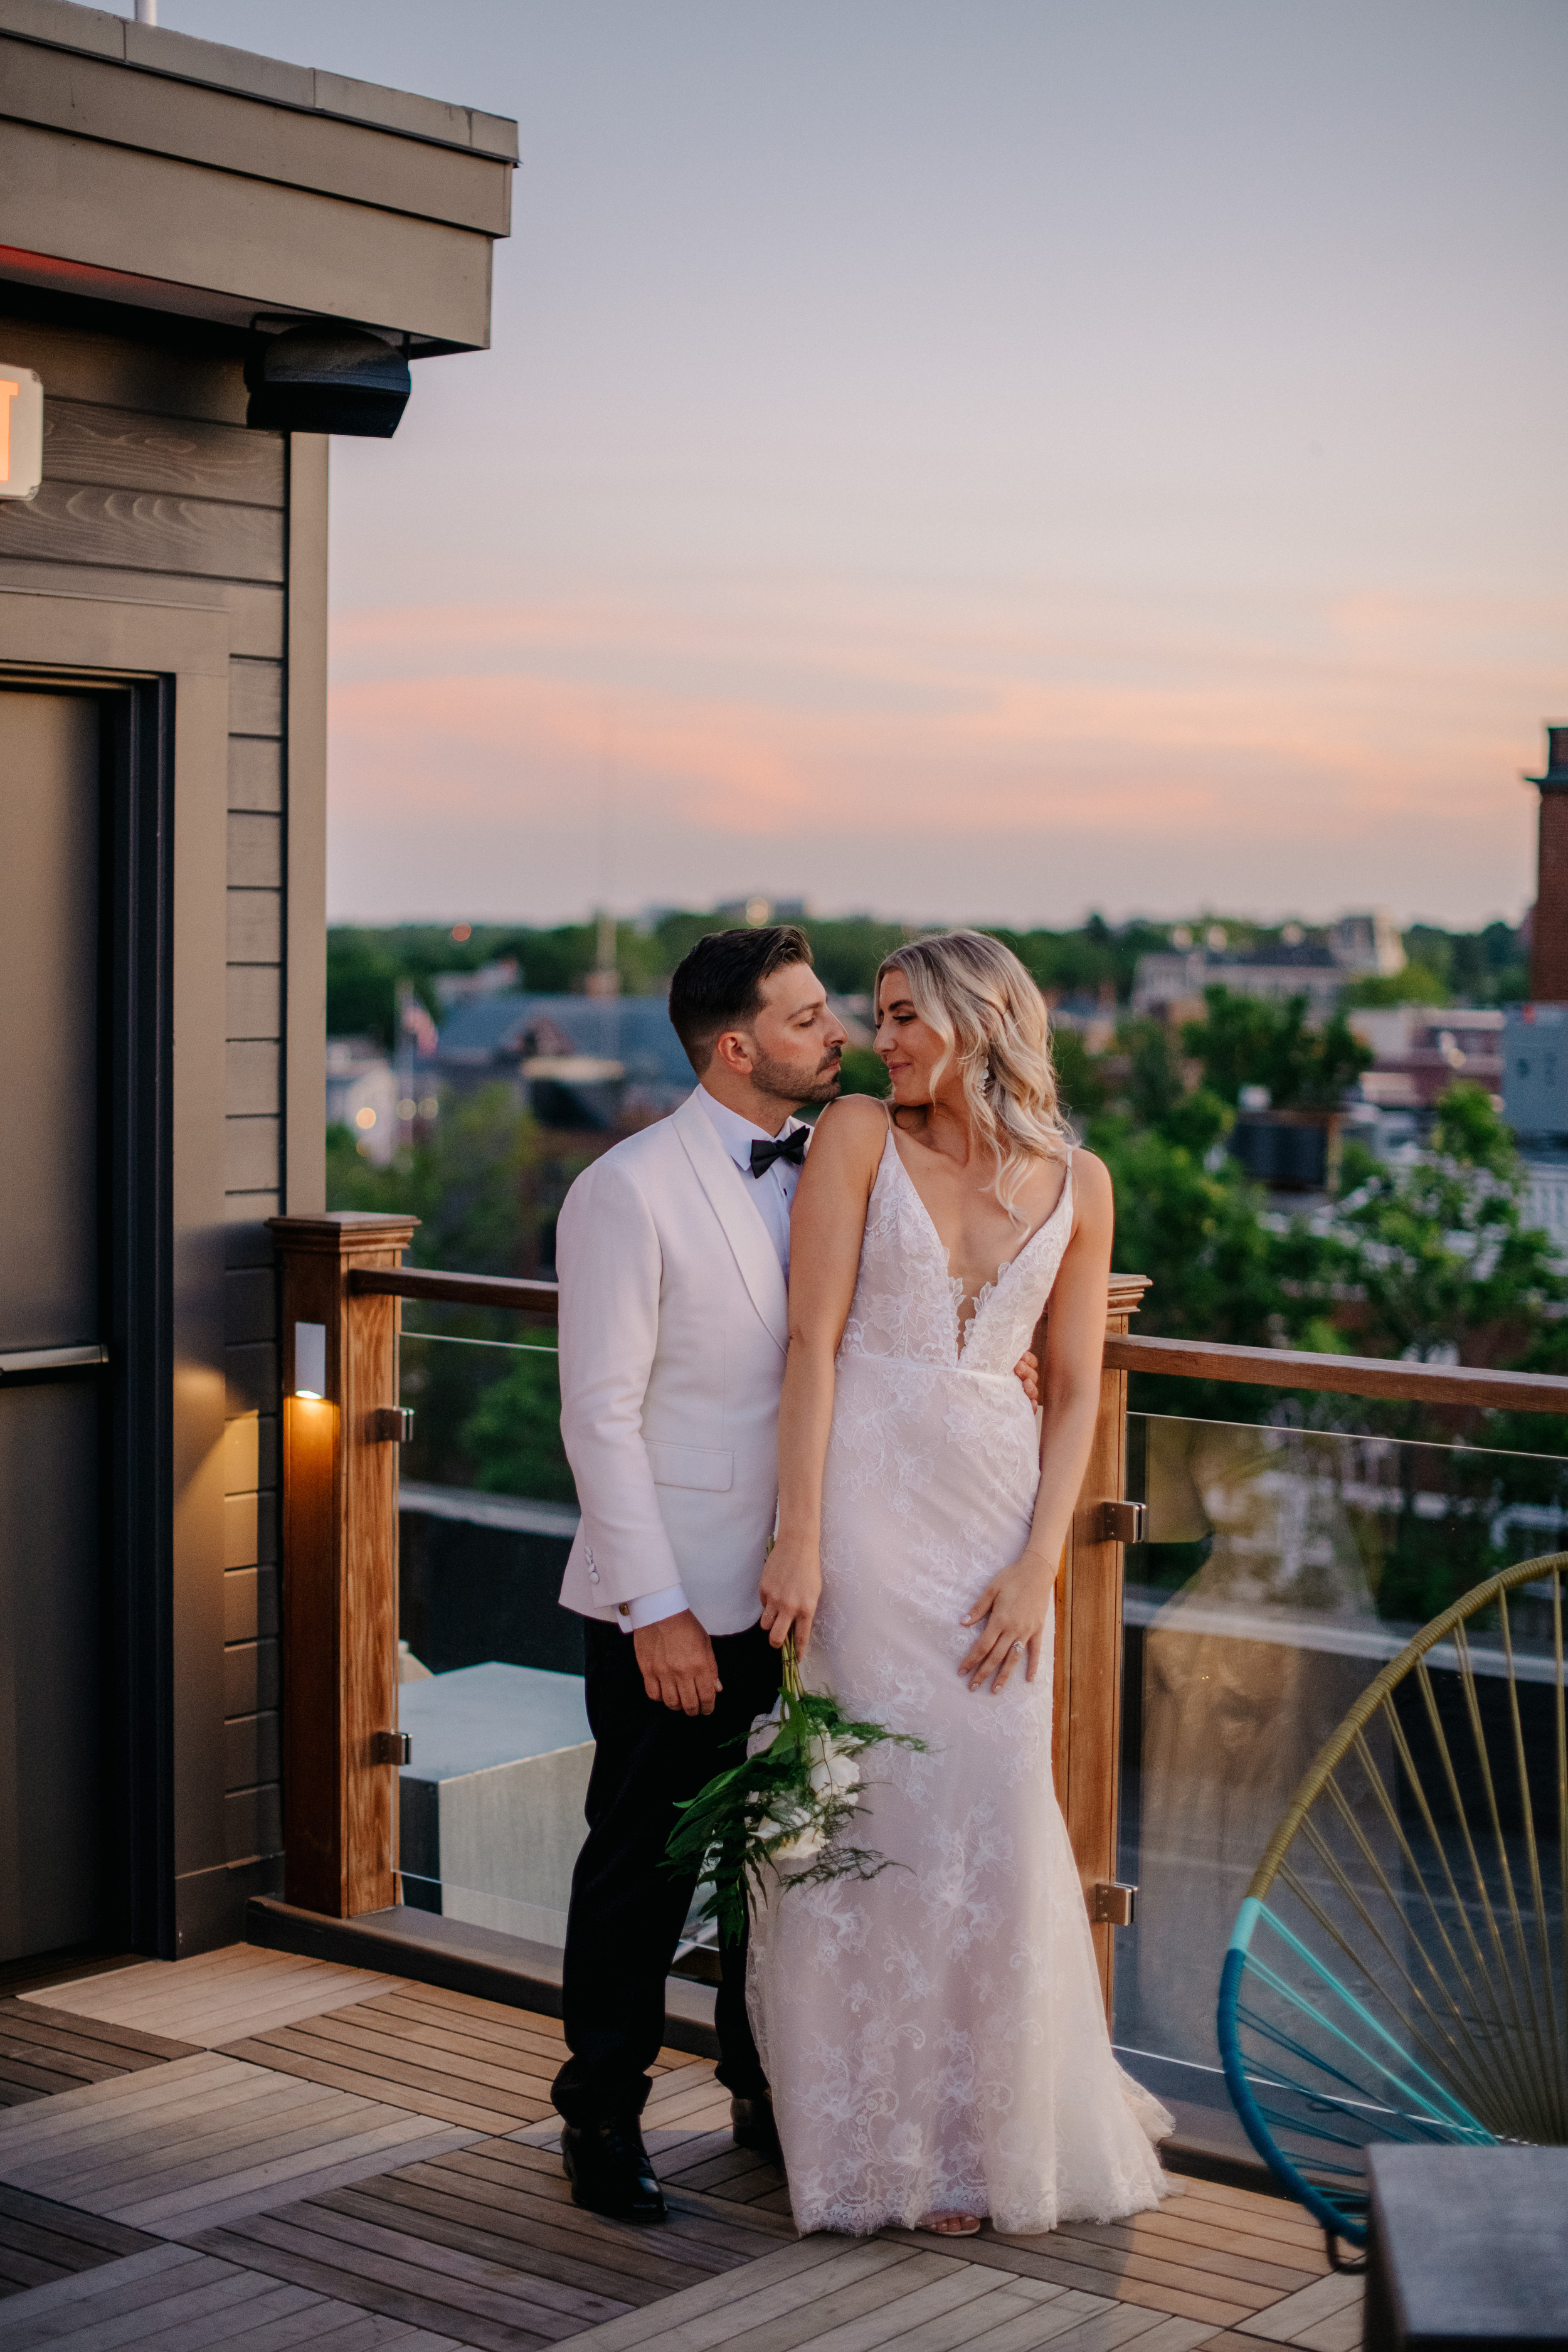 epic roof top sunset locations in boston and seaport for wedding couples